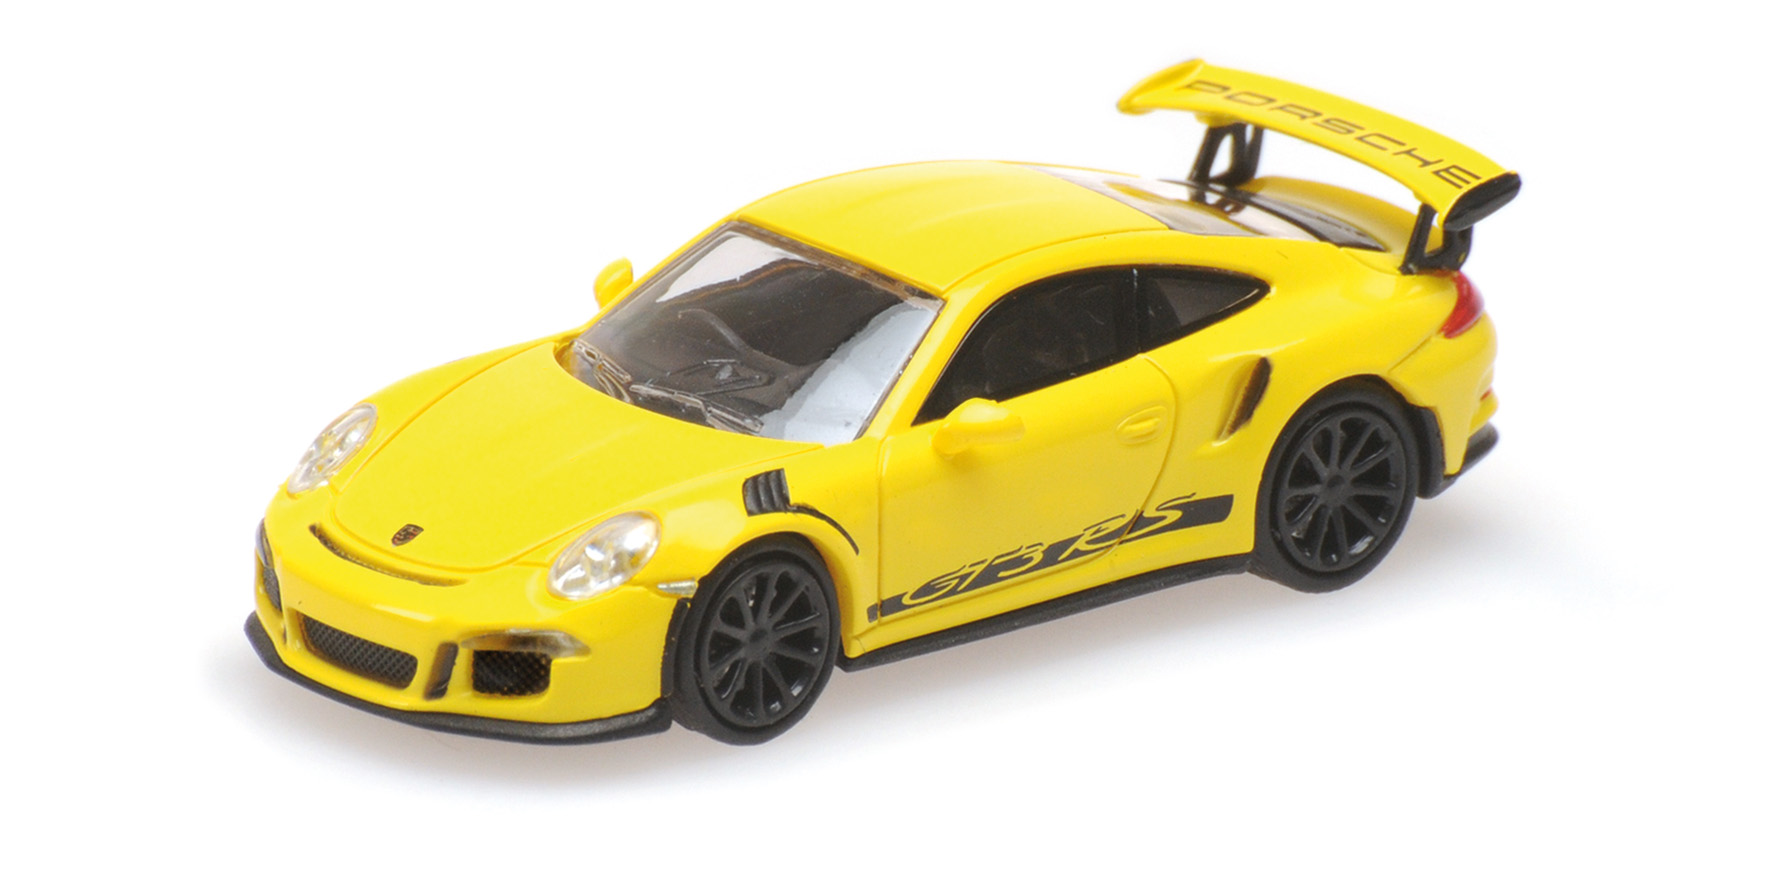 PORSCHE 911 GT3 RS YELLOW WITH STRIPES 2013